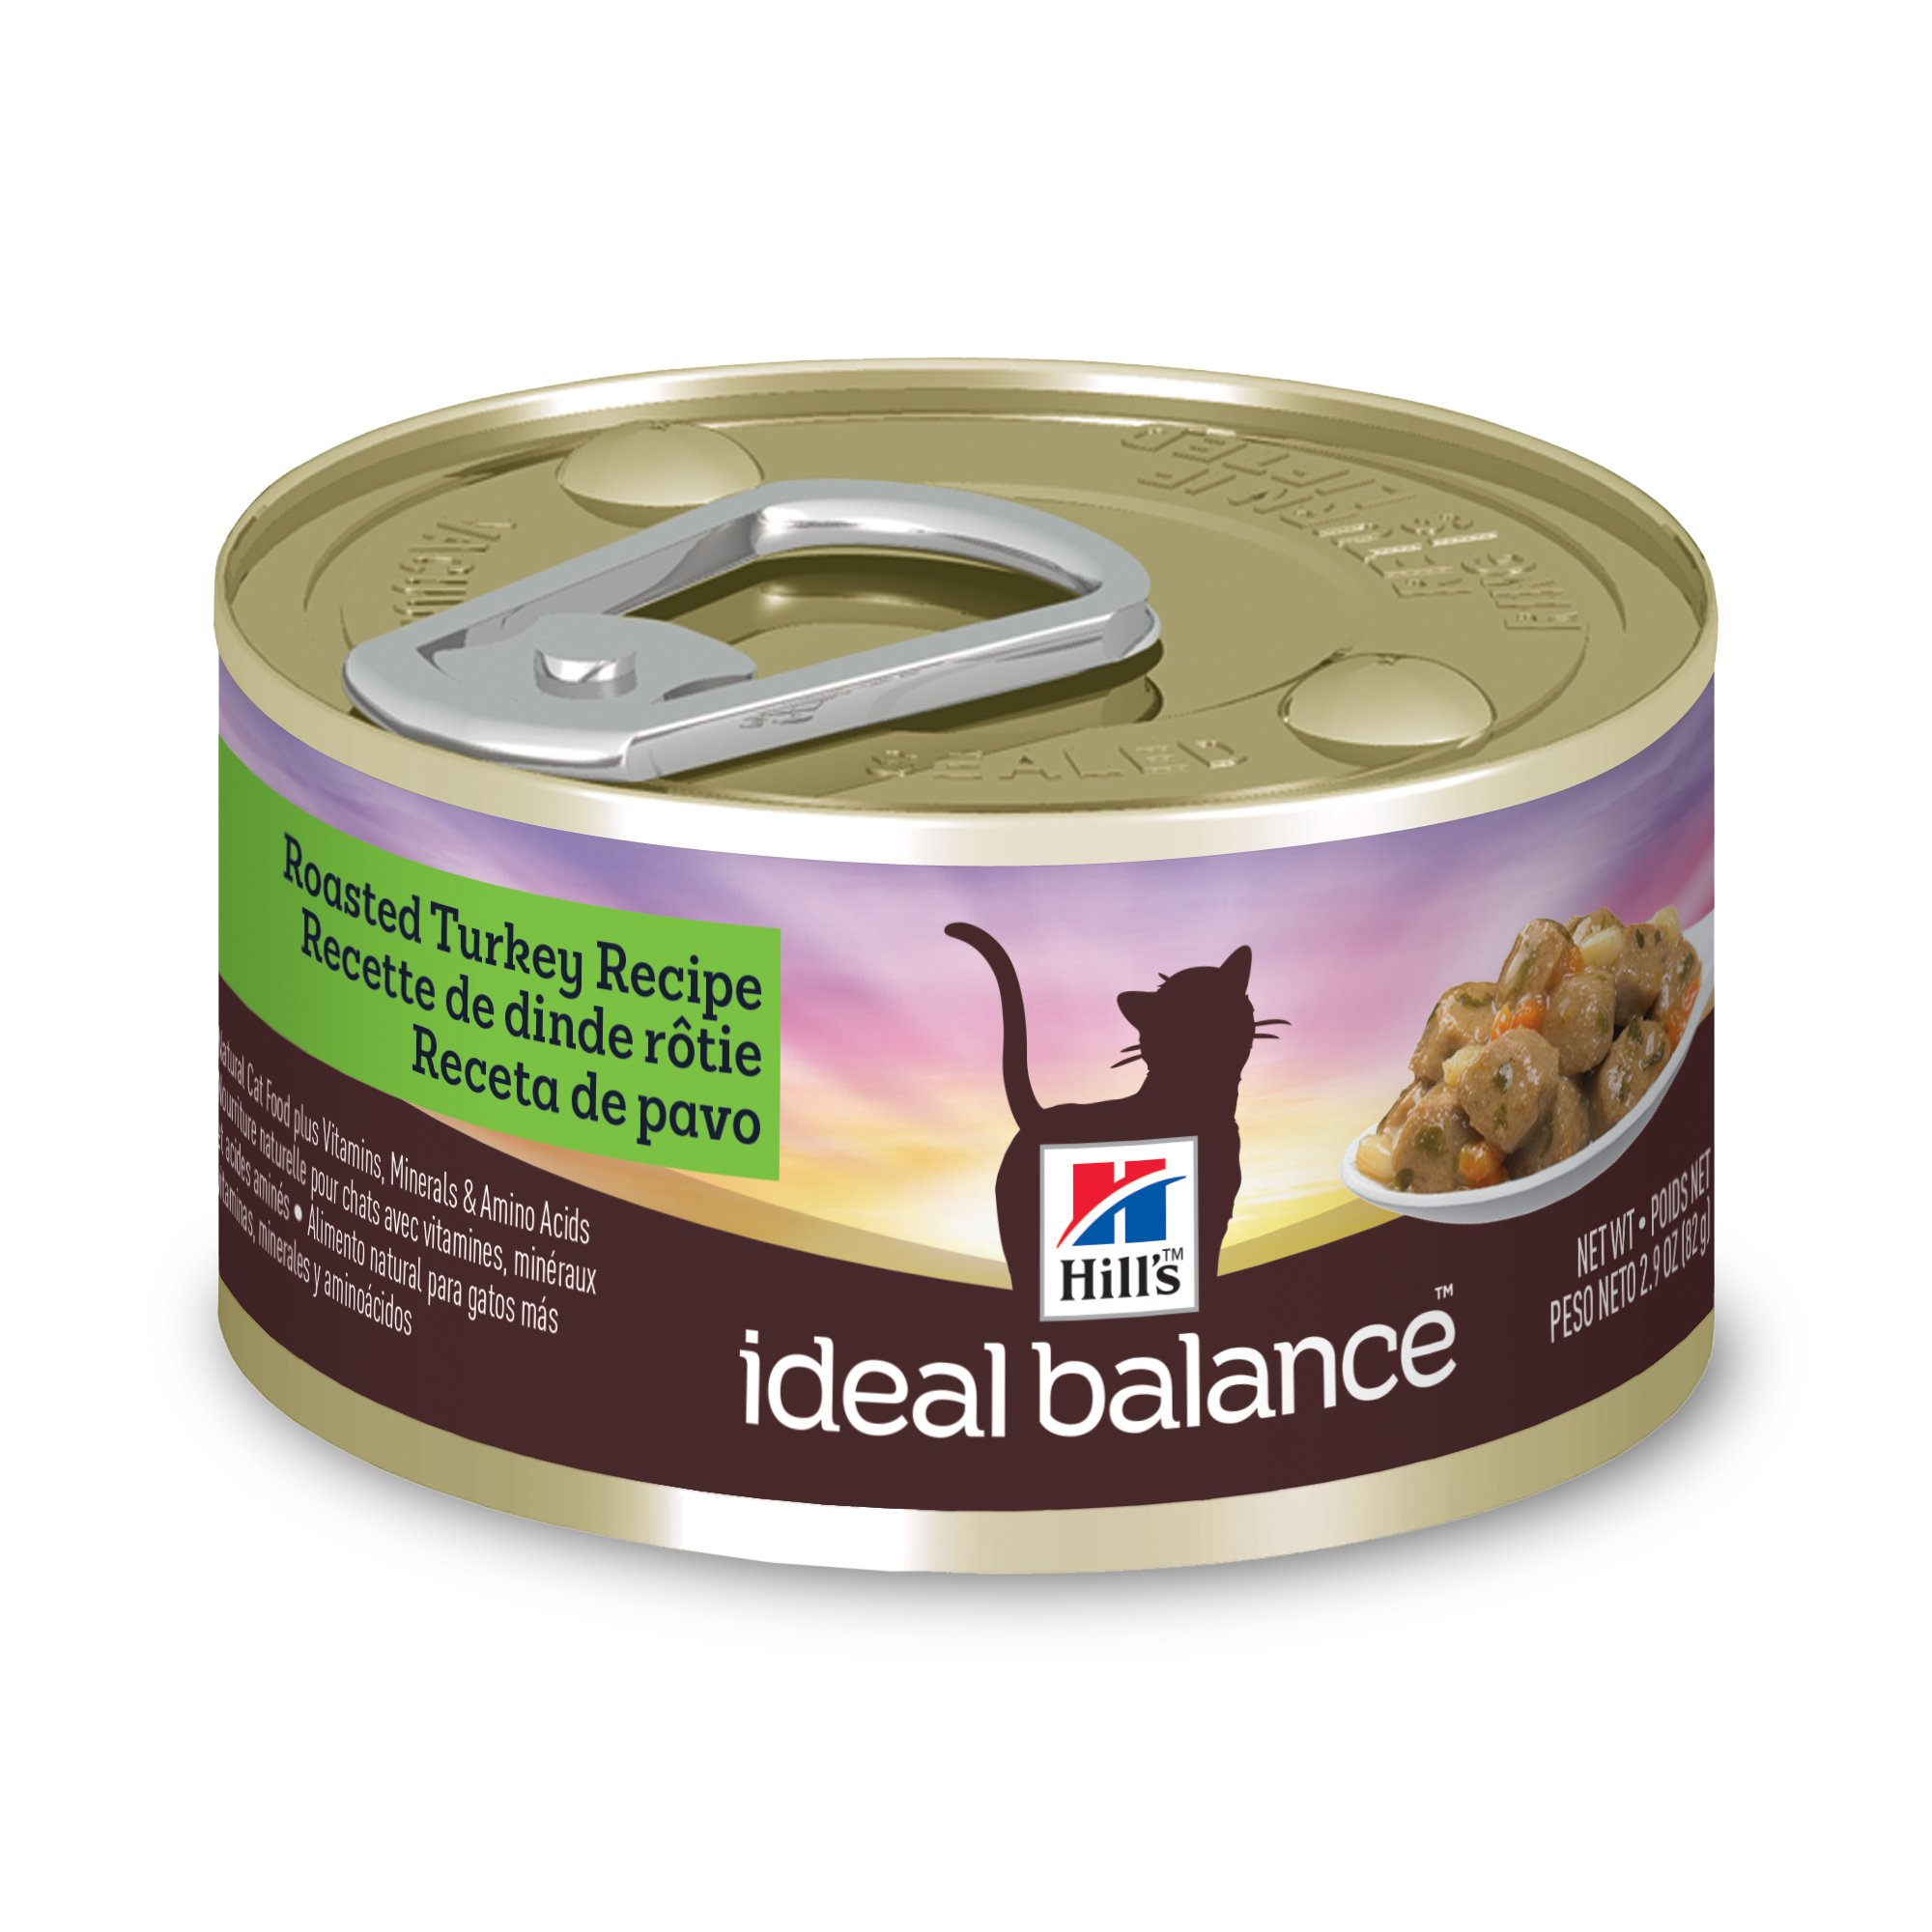 Hill'S Ideal Balance Adult Wet Cat Food, Roasted Turkey Recipe Canned Cat Food, 2.9 Oz, 24 Pack by Hill's ideal balance